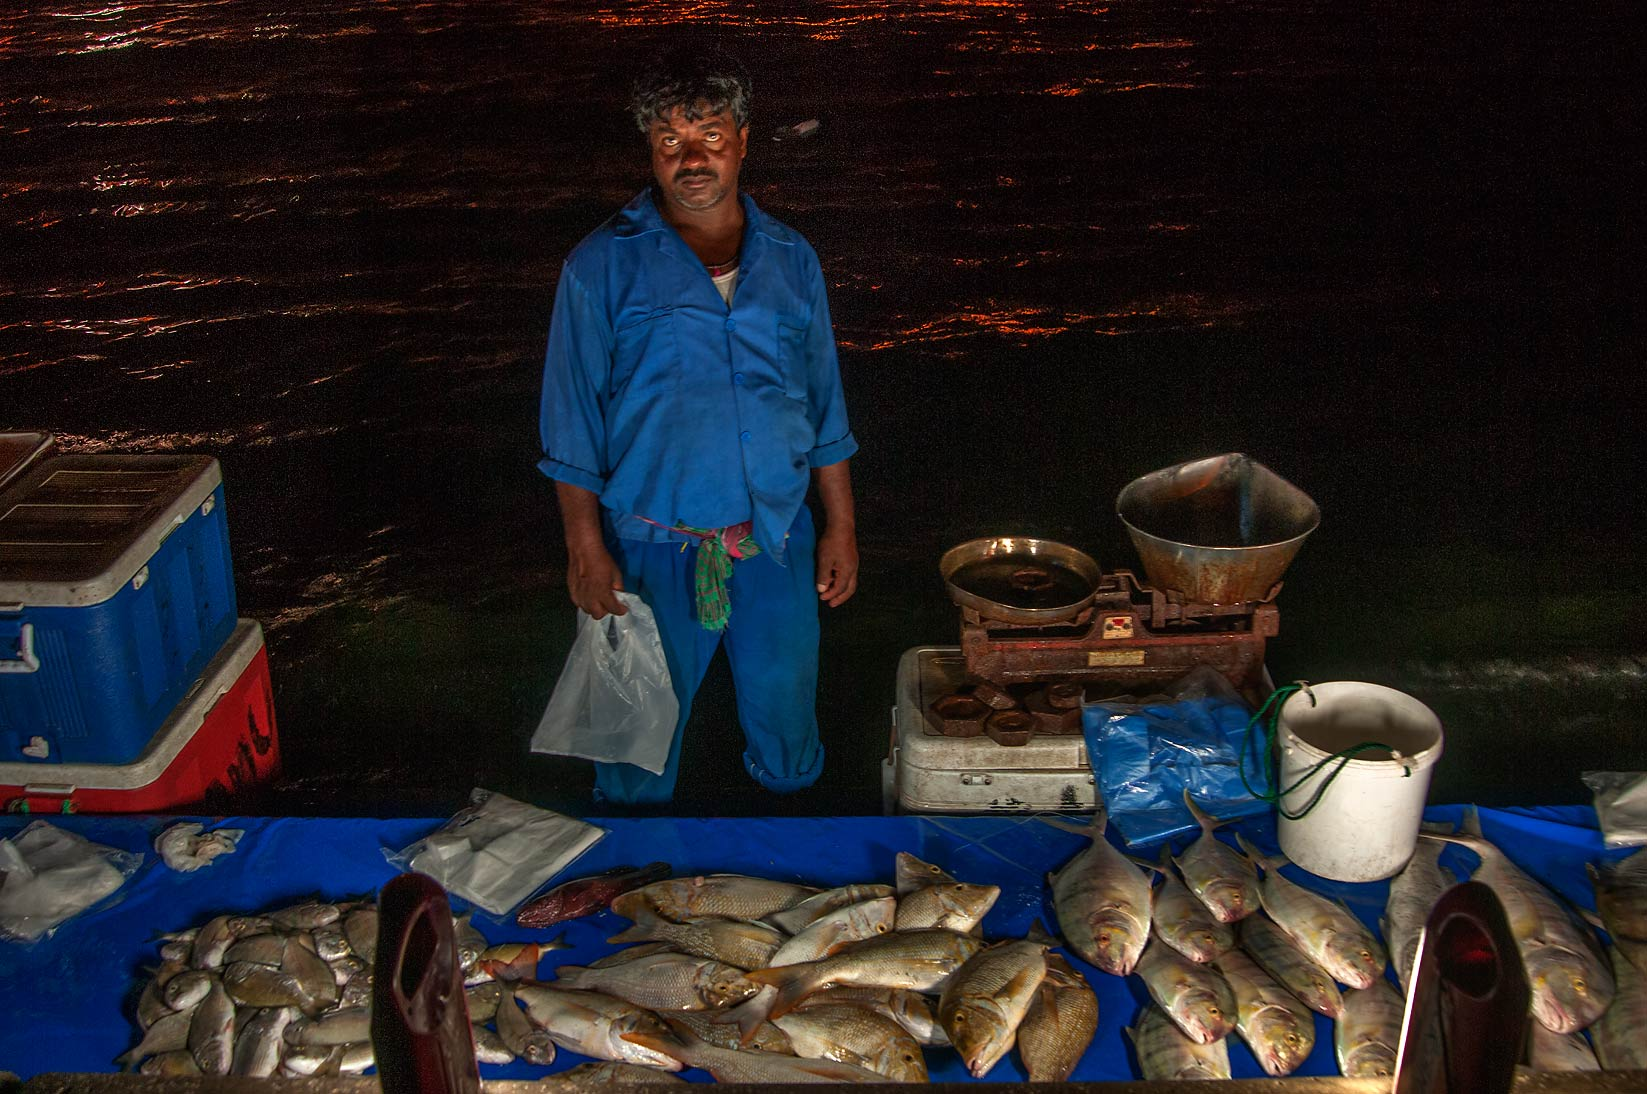 Vendor of evening fish market on Corniche (Fresh Fish Sold). Doha, Qatar